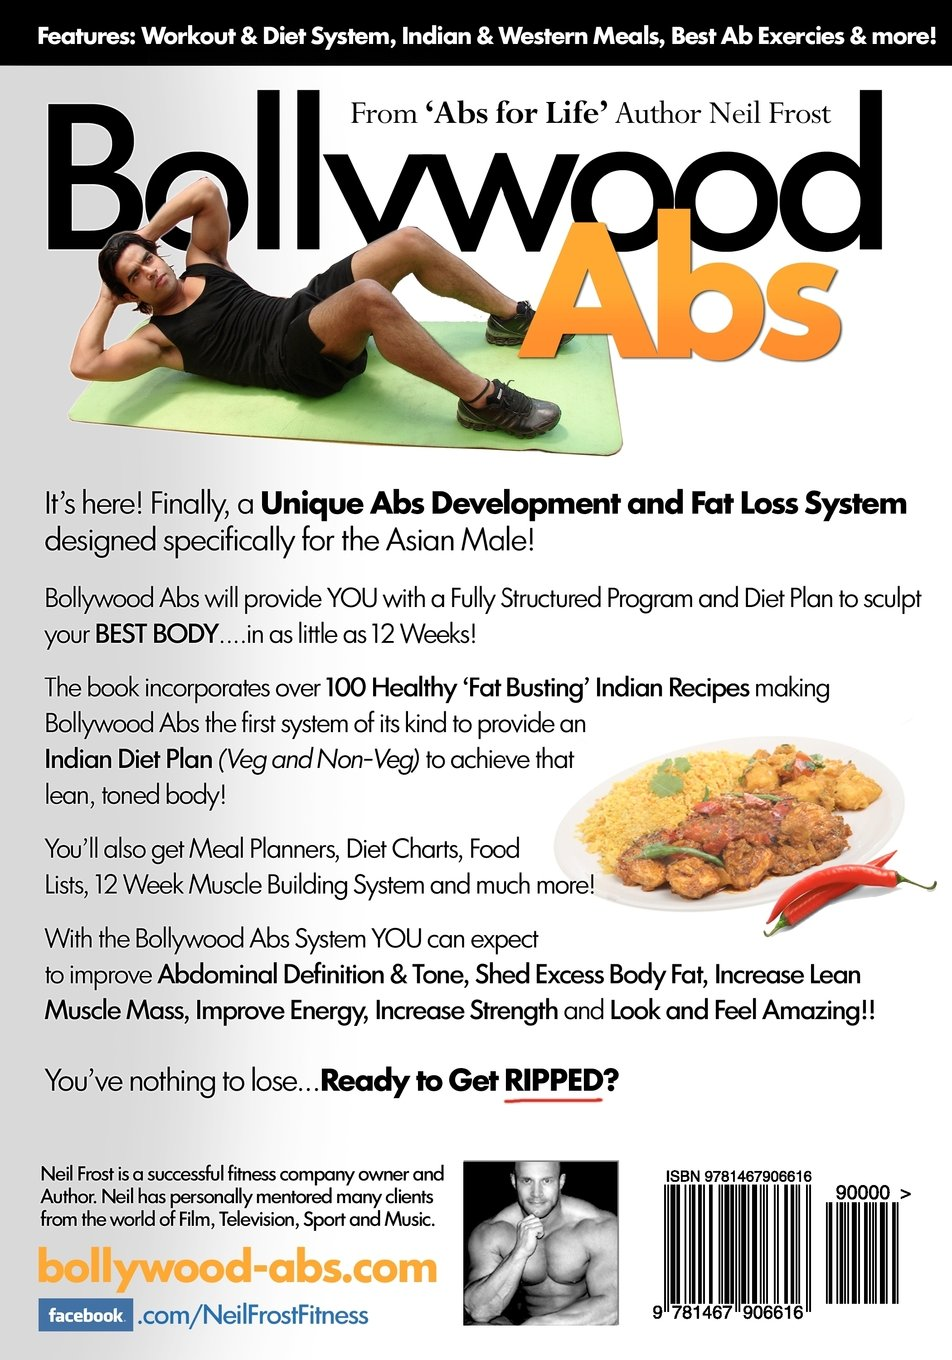 veg diet chart for abs for male: Bollywood abs the 12 week diet workout plan to get that lean